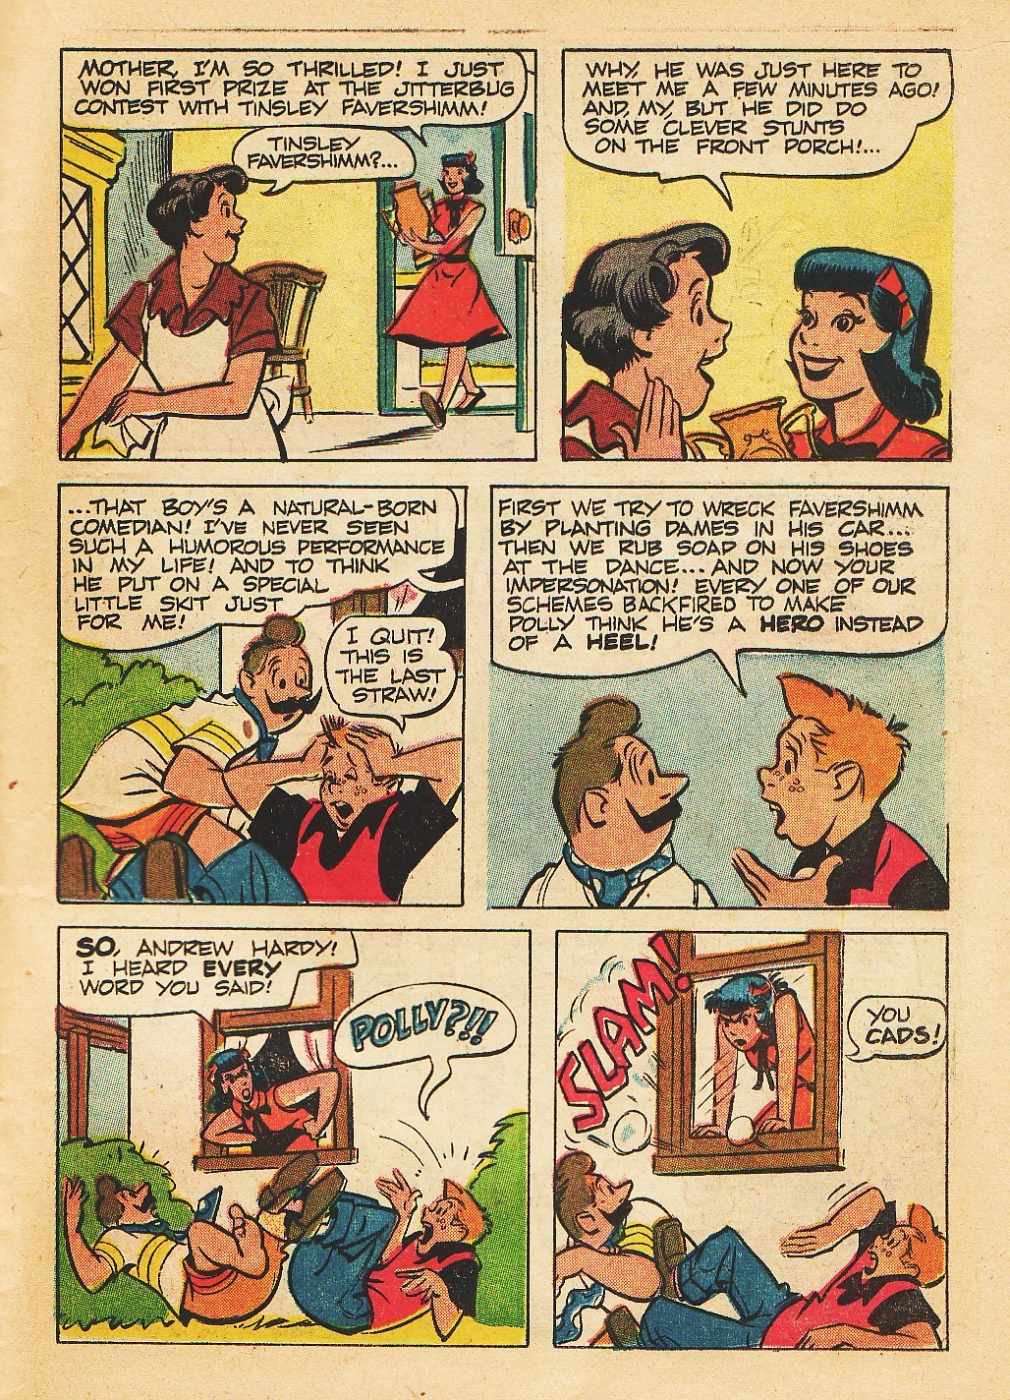 Andy-Hardy-Comic-Strips (b) (23)